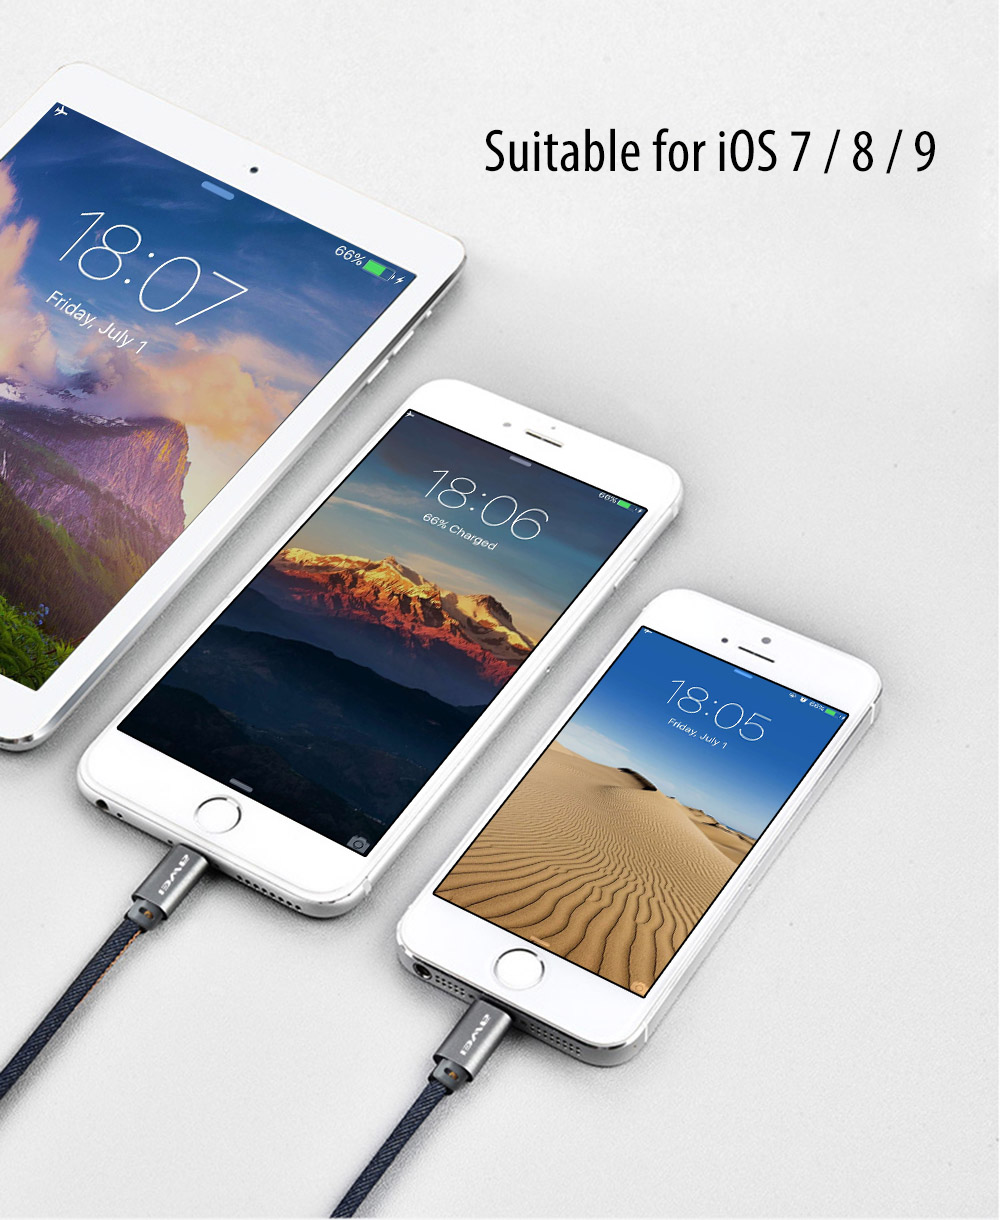 Awei CL - 987 Jeans Fabric / Leather 8 Pin + Micro USB Charge Data Transfer Cable 1M